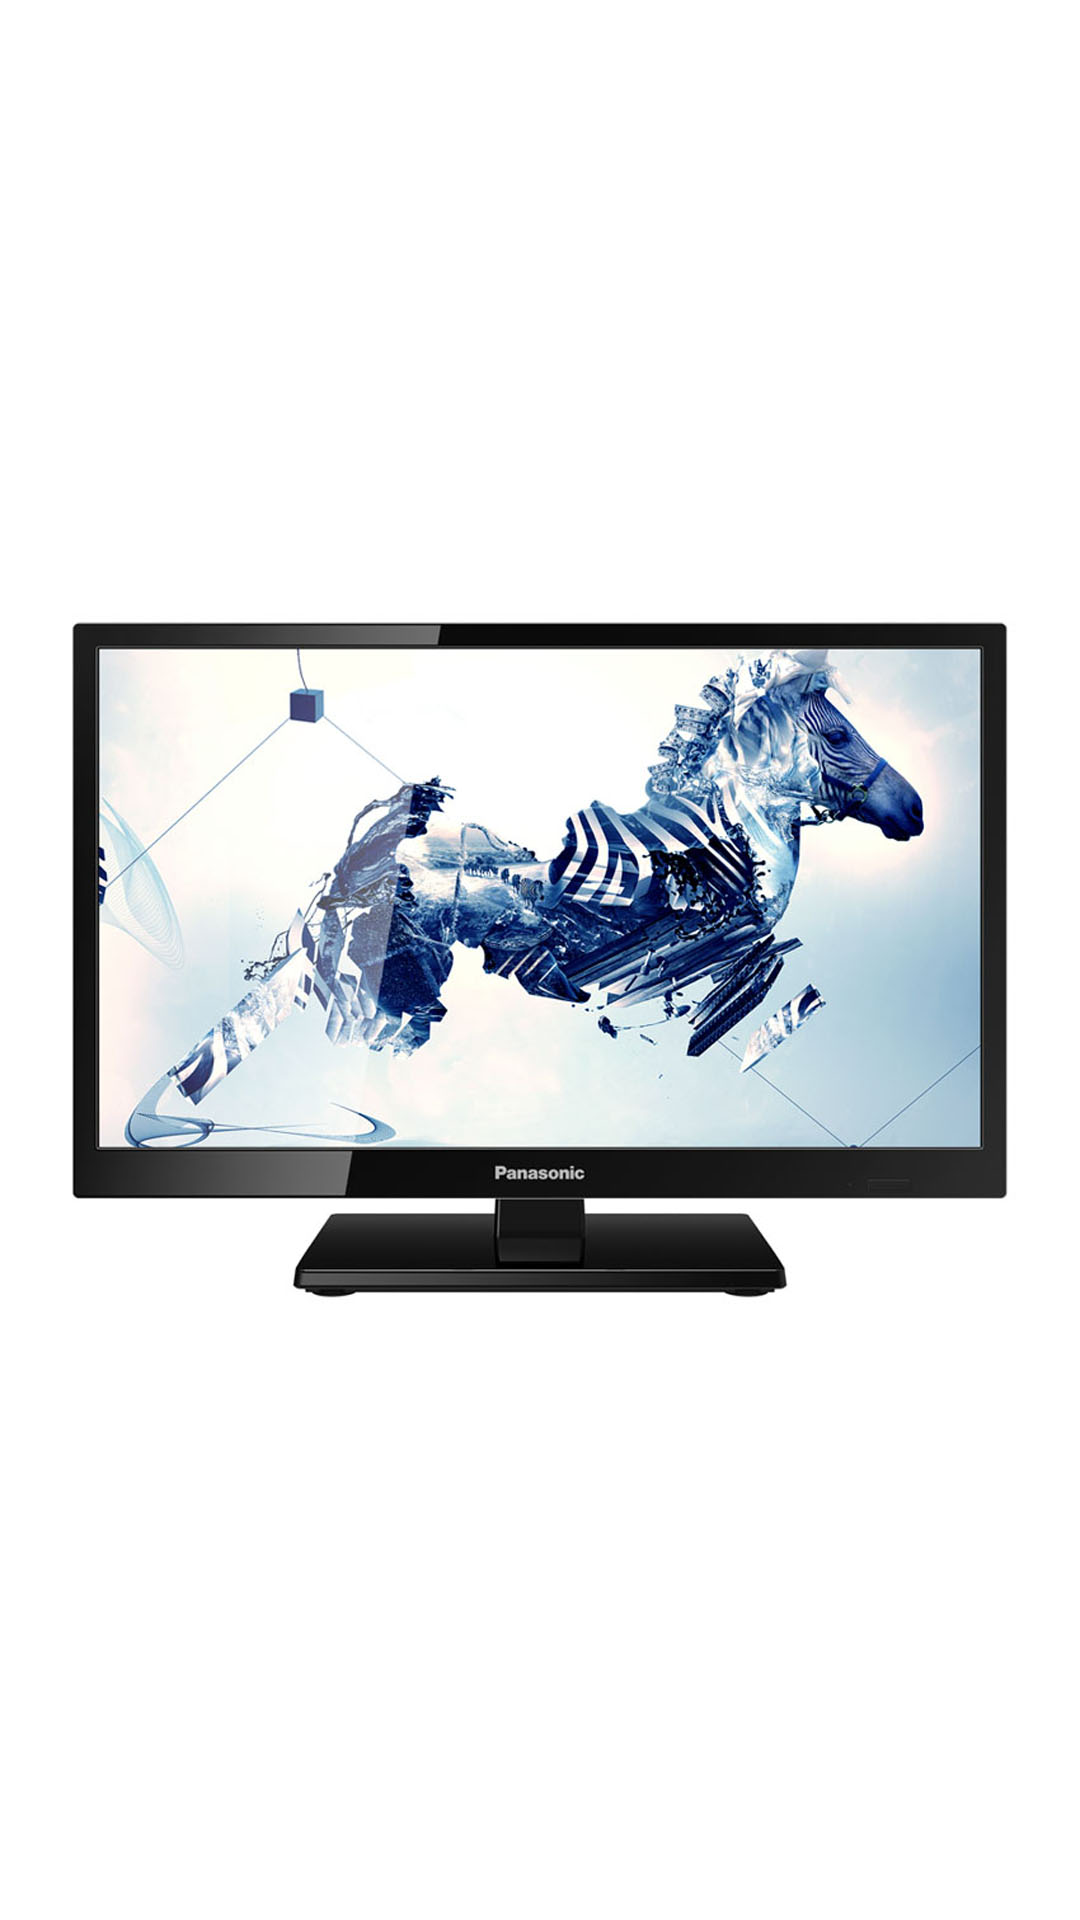 Panasonic TH-19C400DX 48.26 cm (19) LED TV (HD Ready)